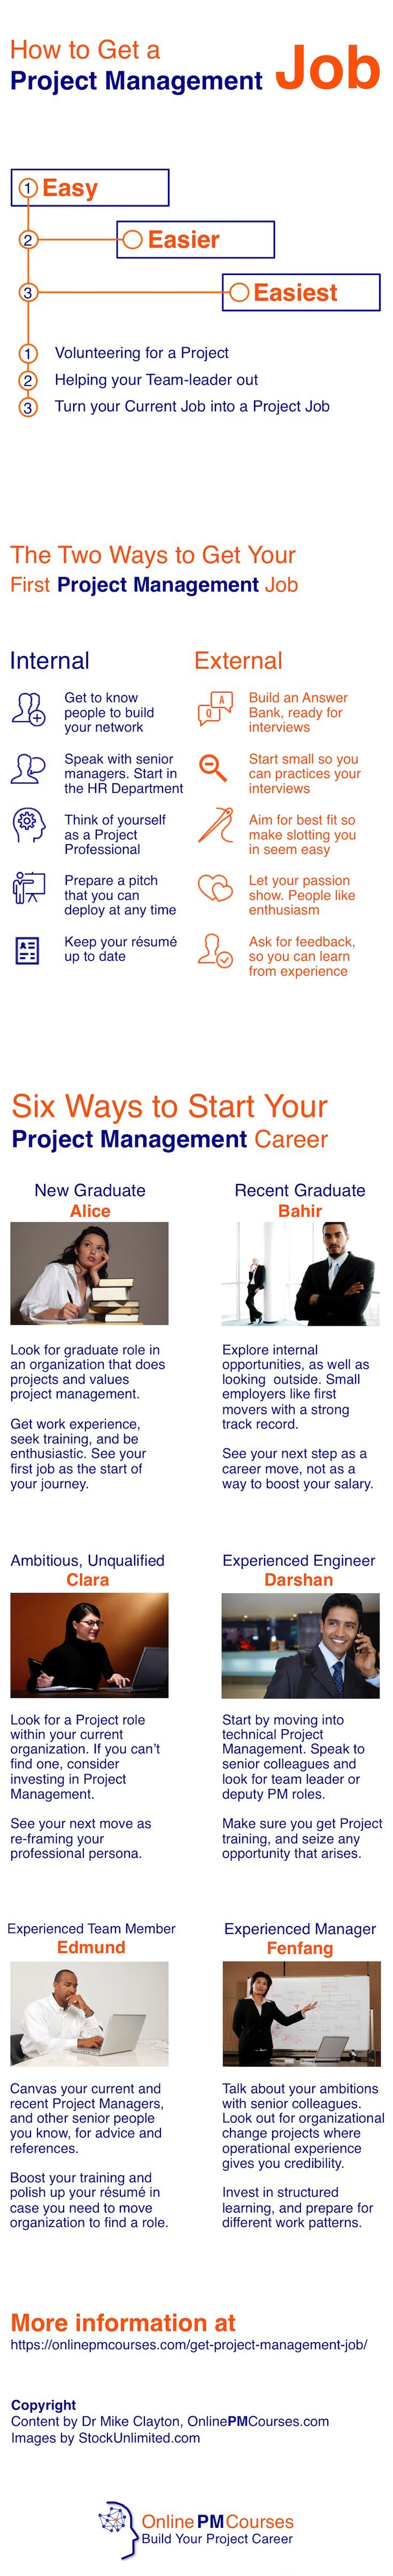 How to Get a Project Management Job - Infographic with six examples of routes into being a Project Manager.